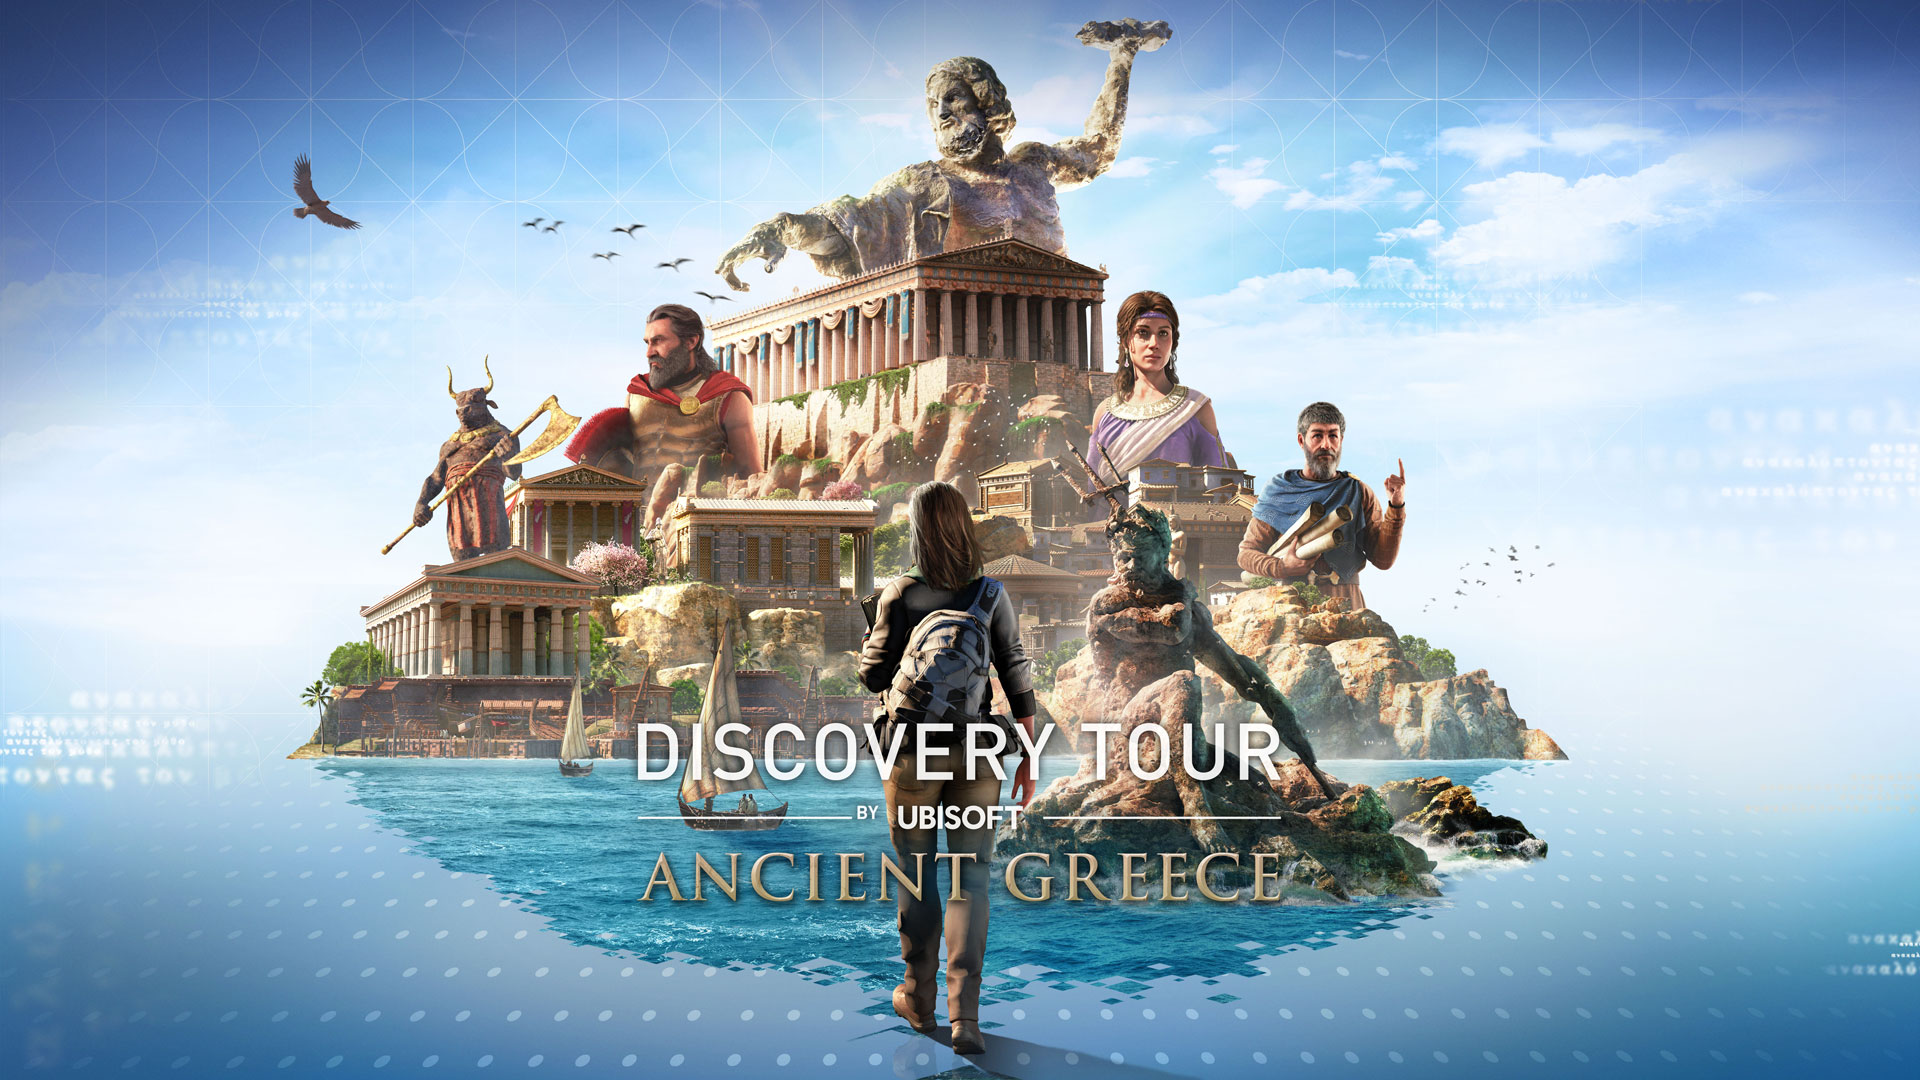 Discovery Tour Ancient Greece Now Available